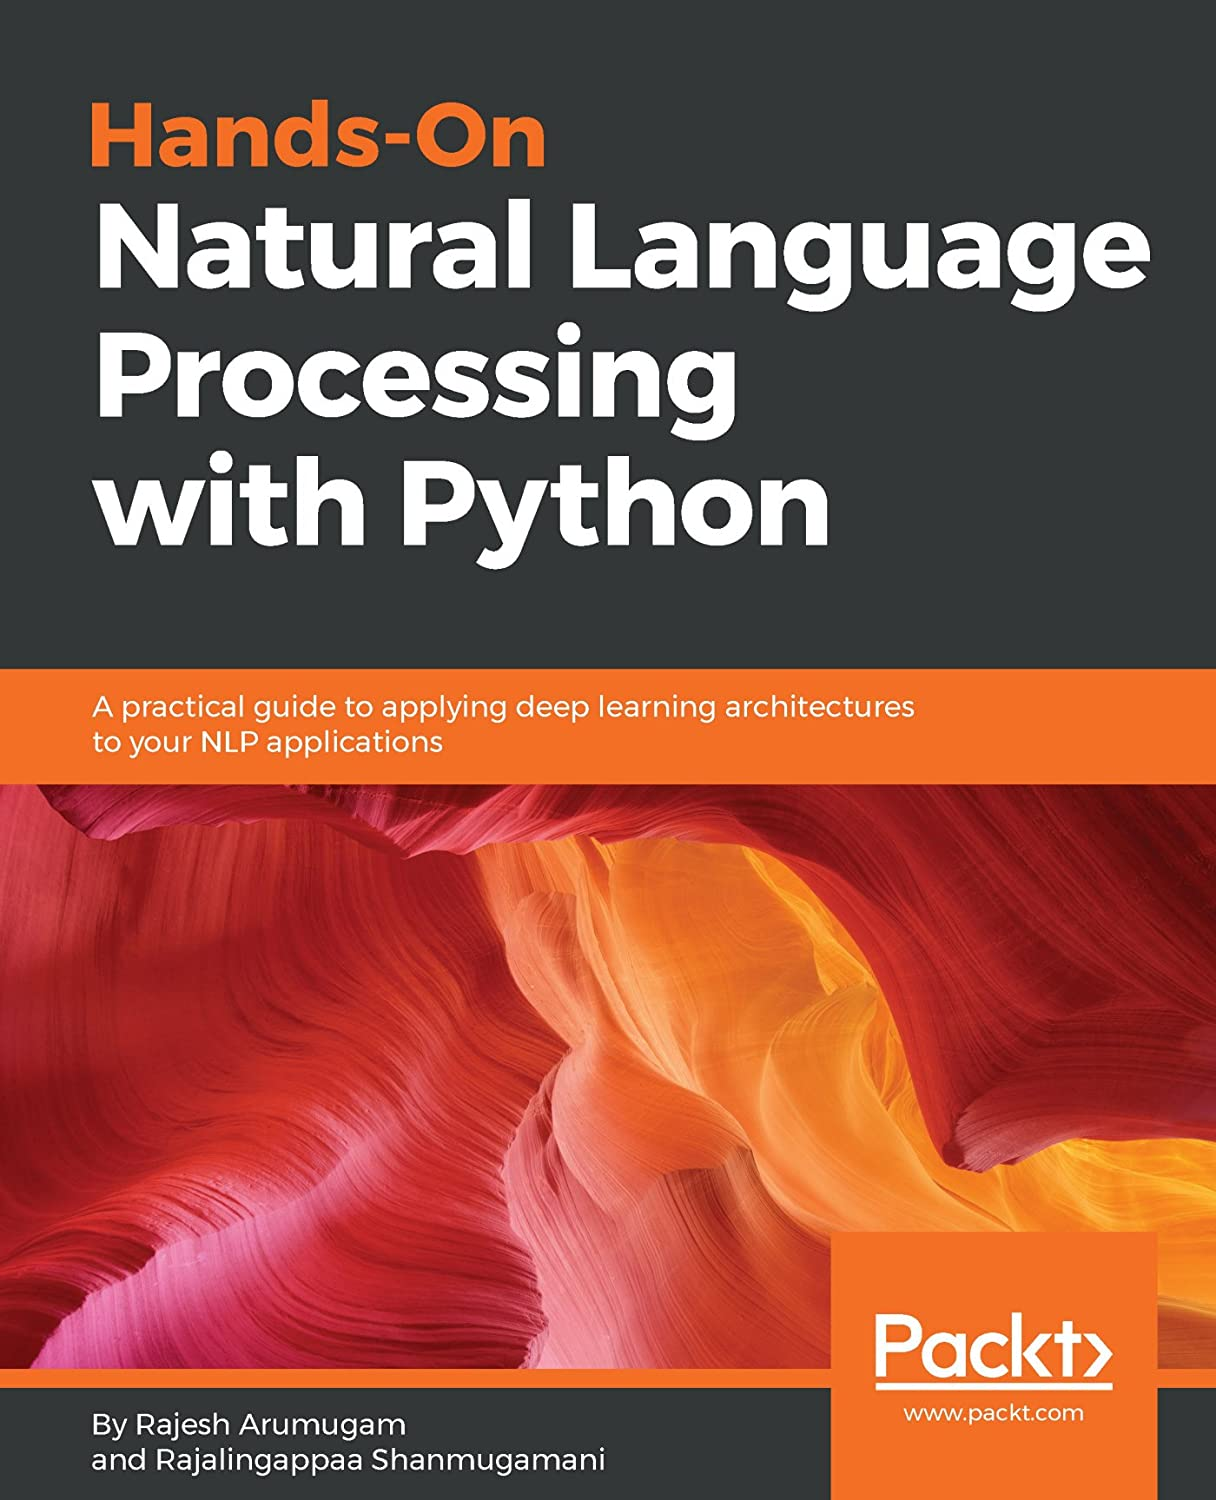 Hands-On Natural Language Processing with Python: A practical guide